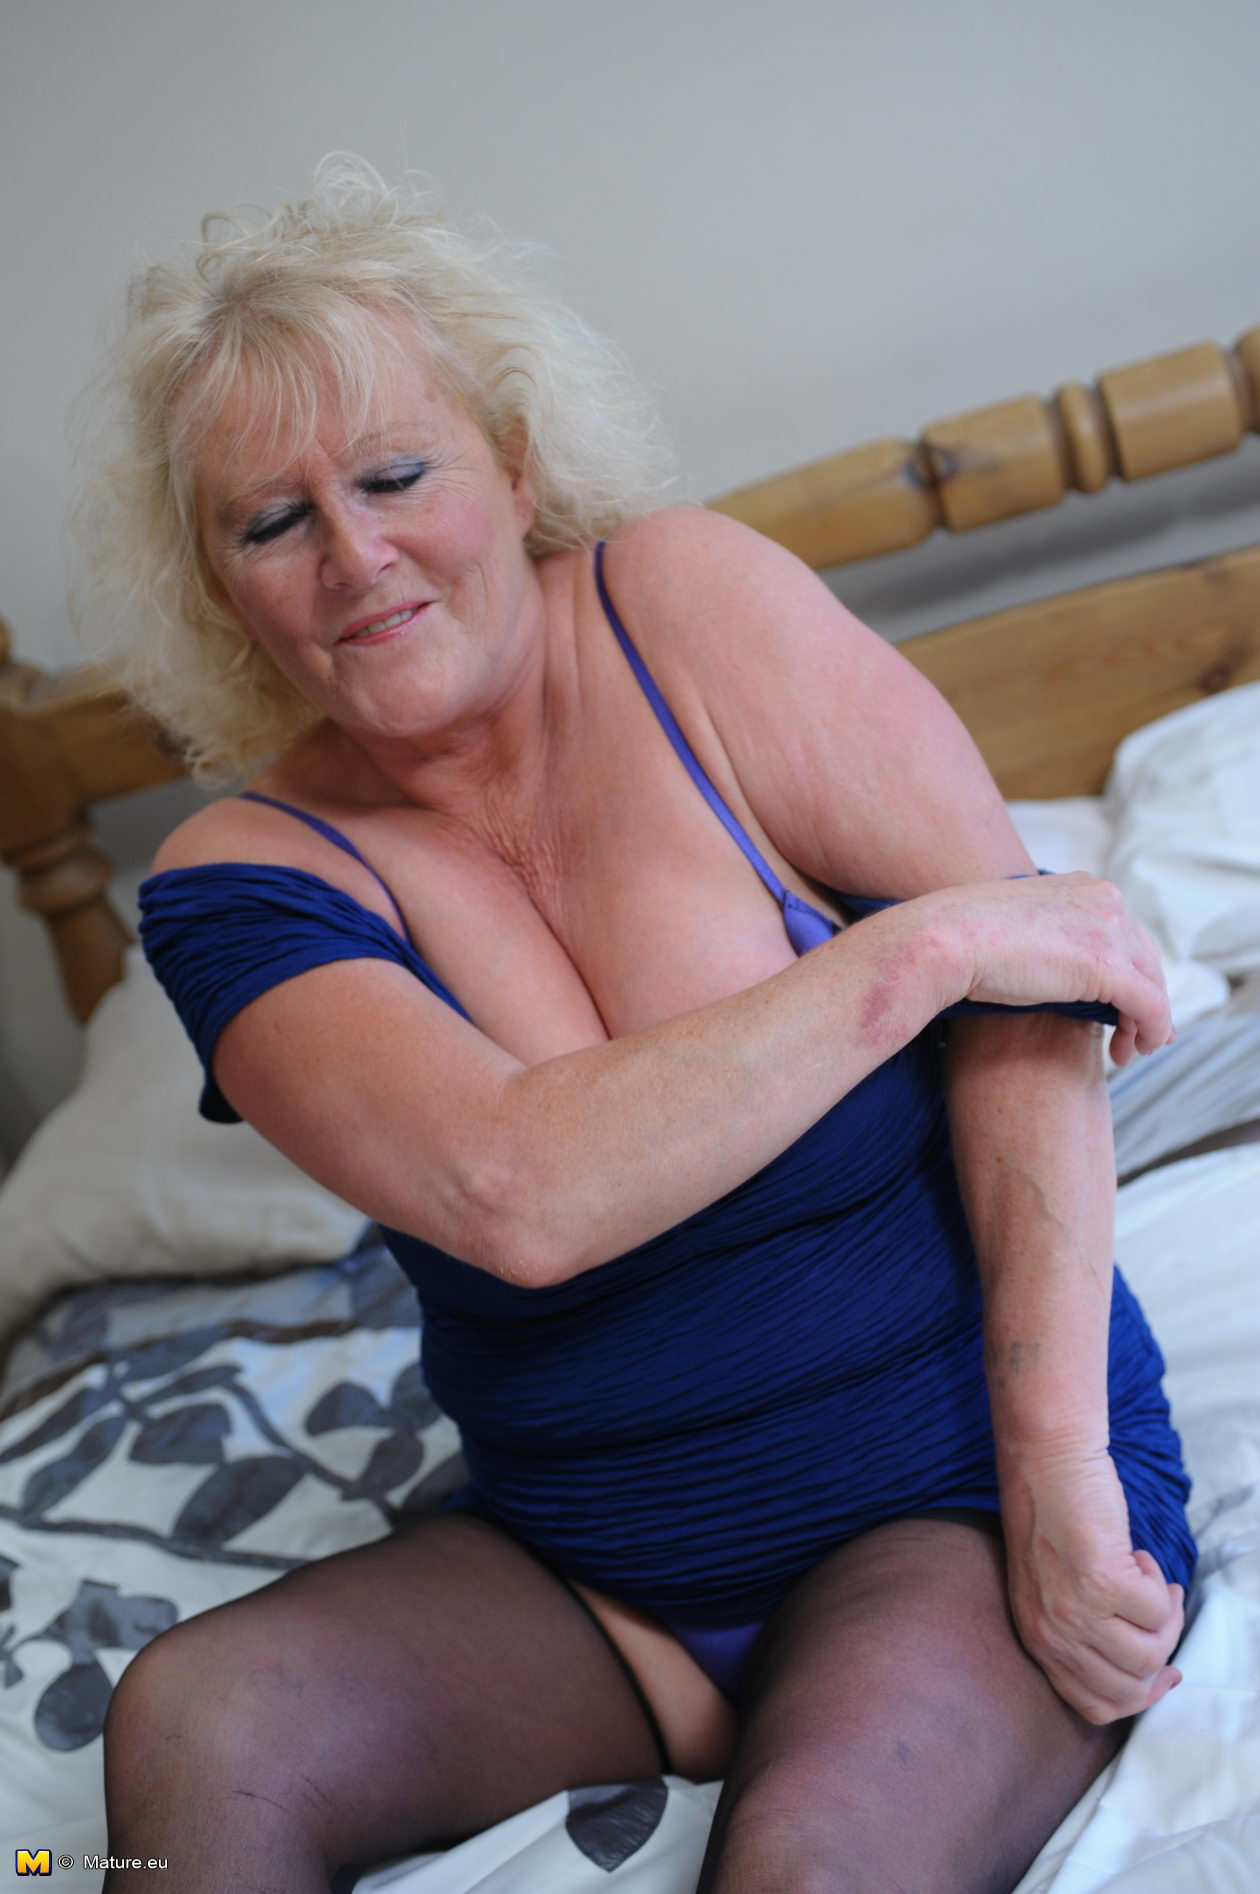 Mature claire gets some pov groping in the gym 3